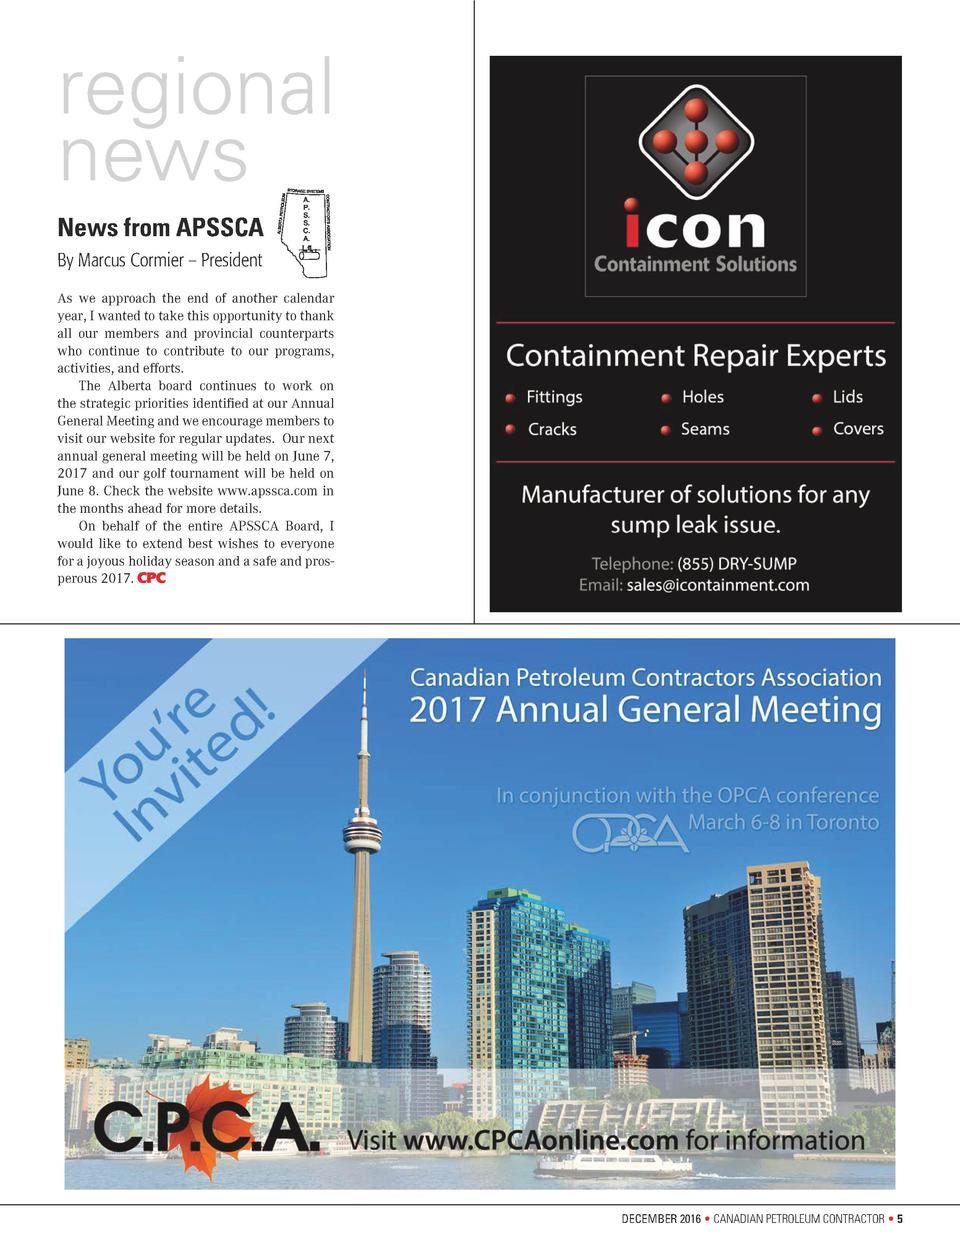 regional news News from APSSCA By Marcus Cormier     President As we approach the end of another calendar year, I wanted t...